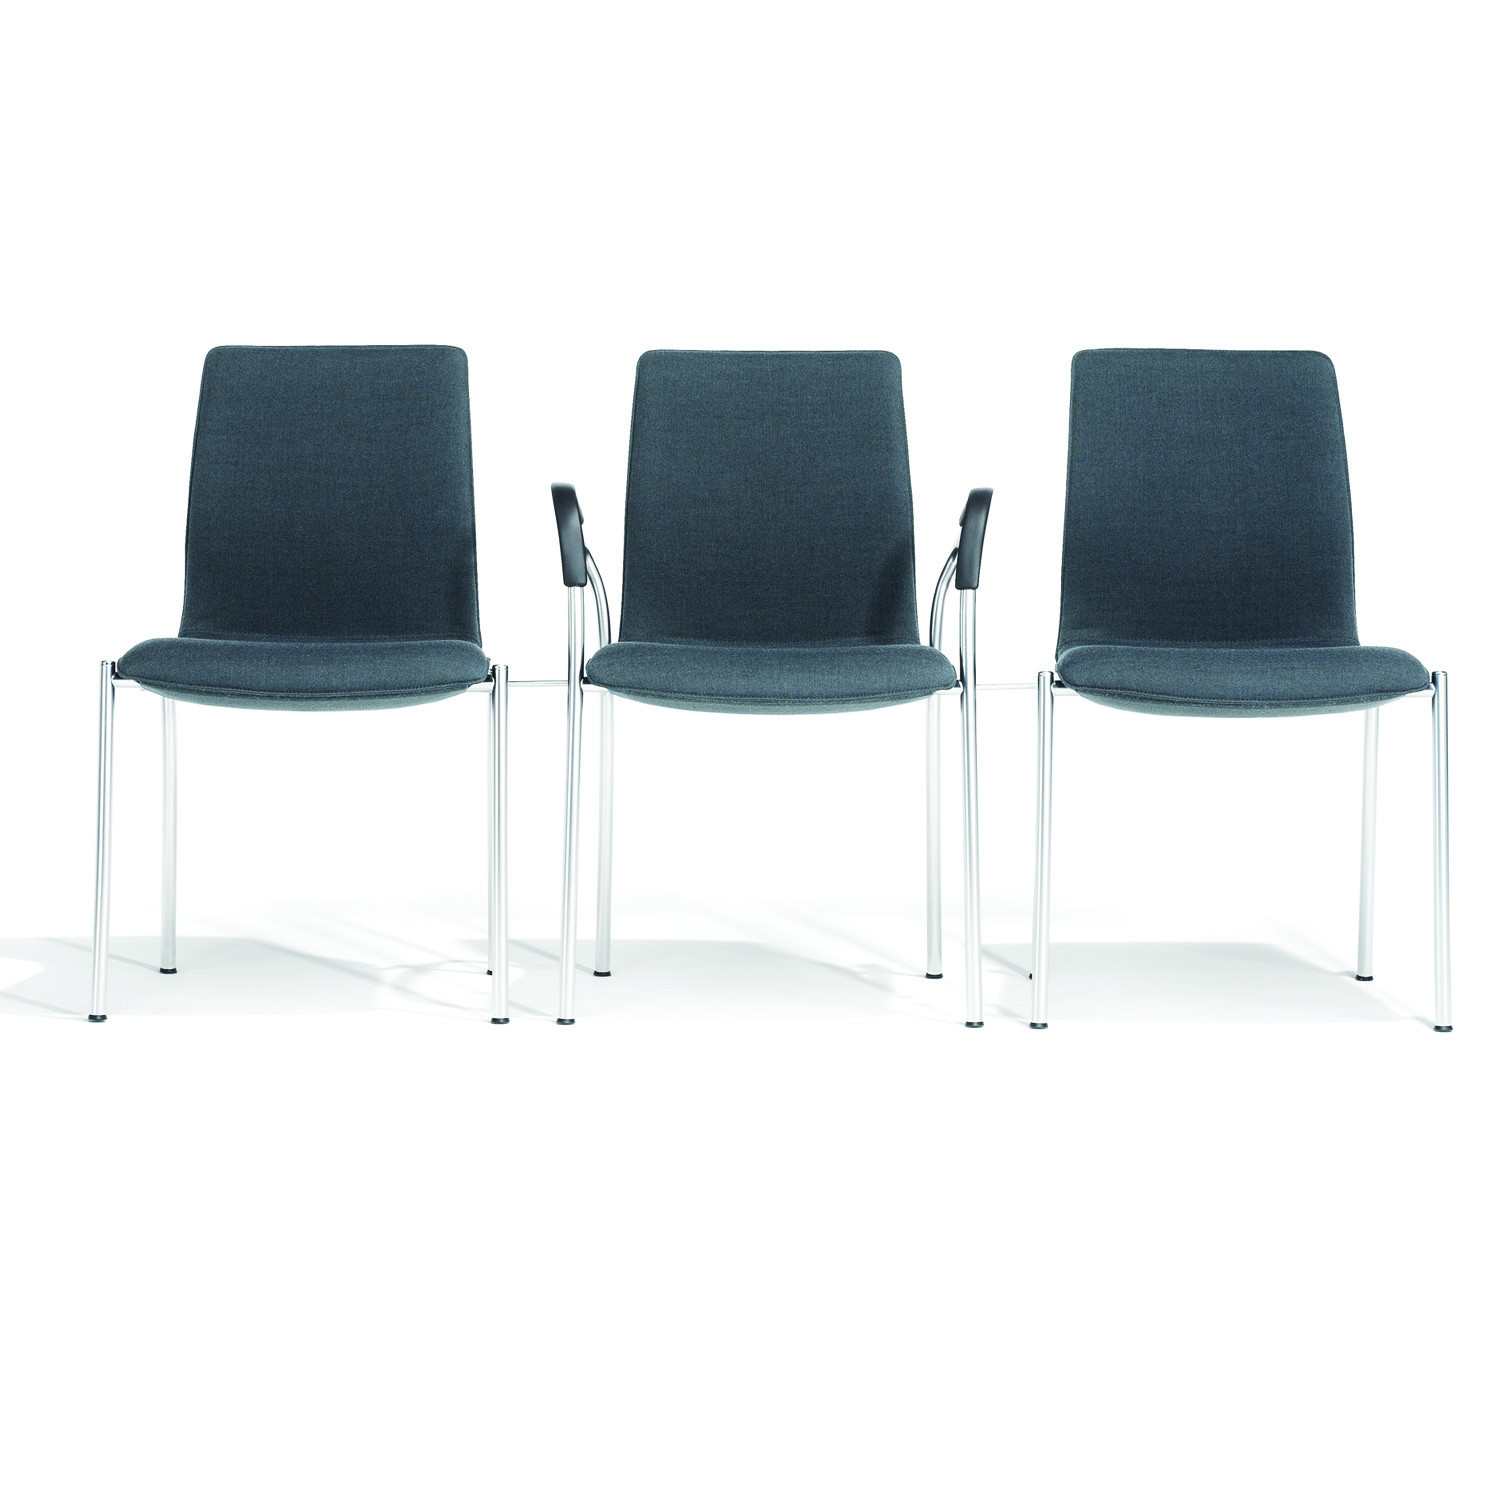 Kusch+Co 8500 Ona Plaza linked Chairs